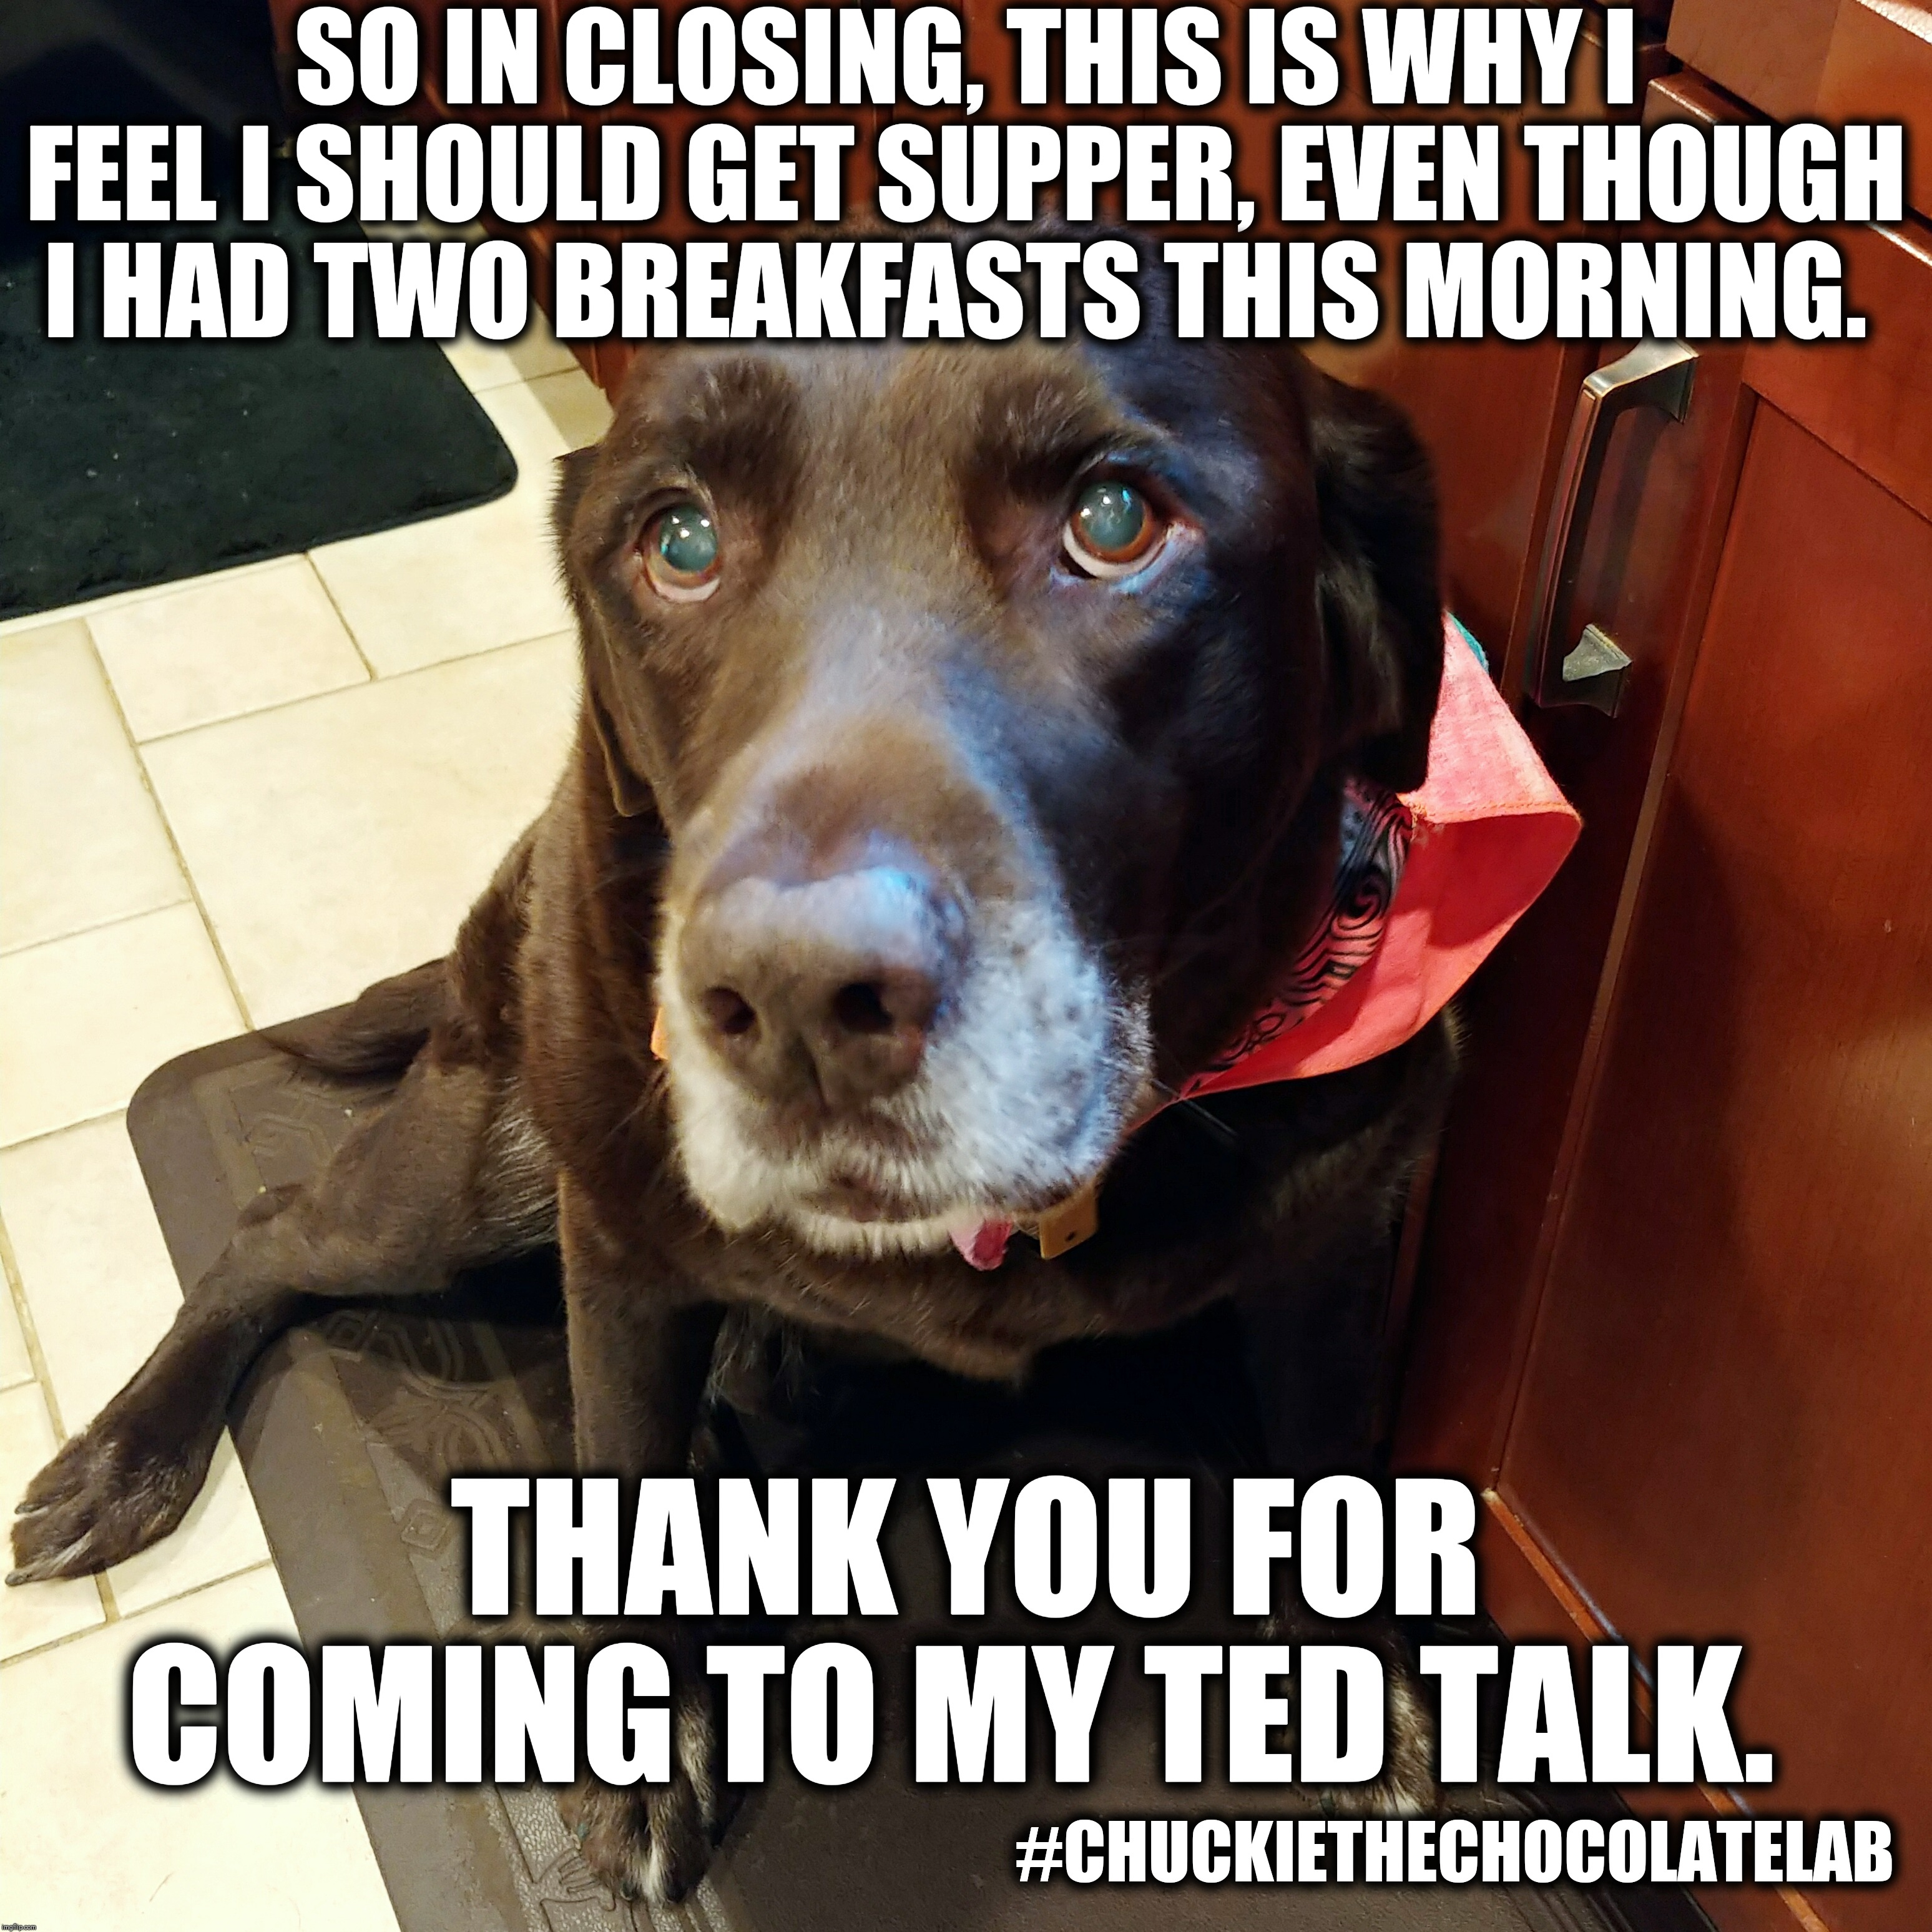 I ate two breakfasts |  SO IN CLOSING, THIS IS WHY I FEEL I SHOULD GET SUPPER, EVEN THOUGH I HAD TWO BREAKFASTS THIS MORNING. THANK YOU FOR COMING TO MY TED TALK. #CHUCKIETHECHOCOLATELAB | image tagged in chuckie the chocolate lab,funny,dogs,memes,ted talk,second breakfast | made w/ Imgflip meme maker